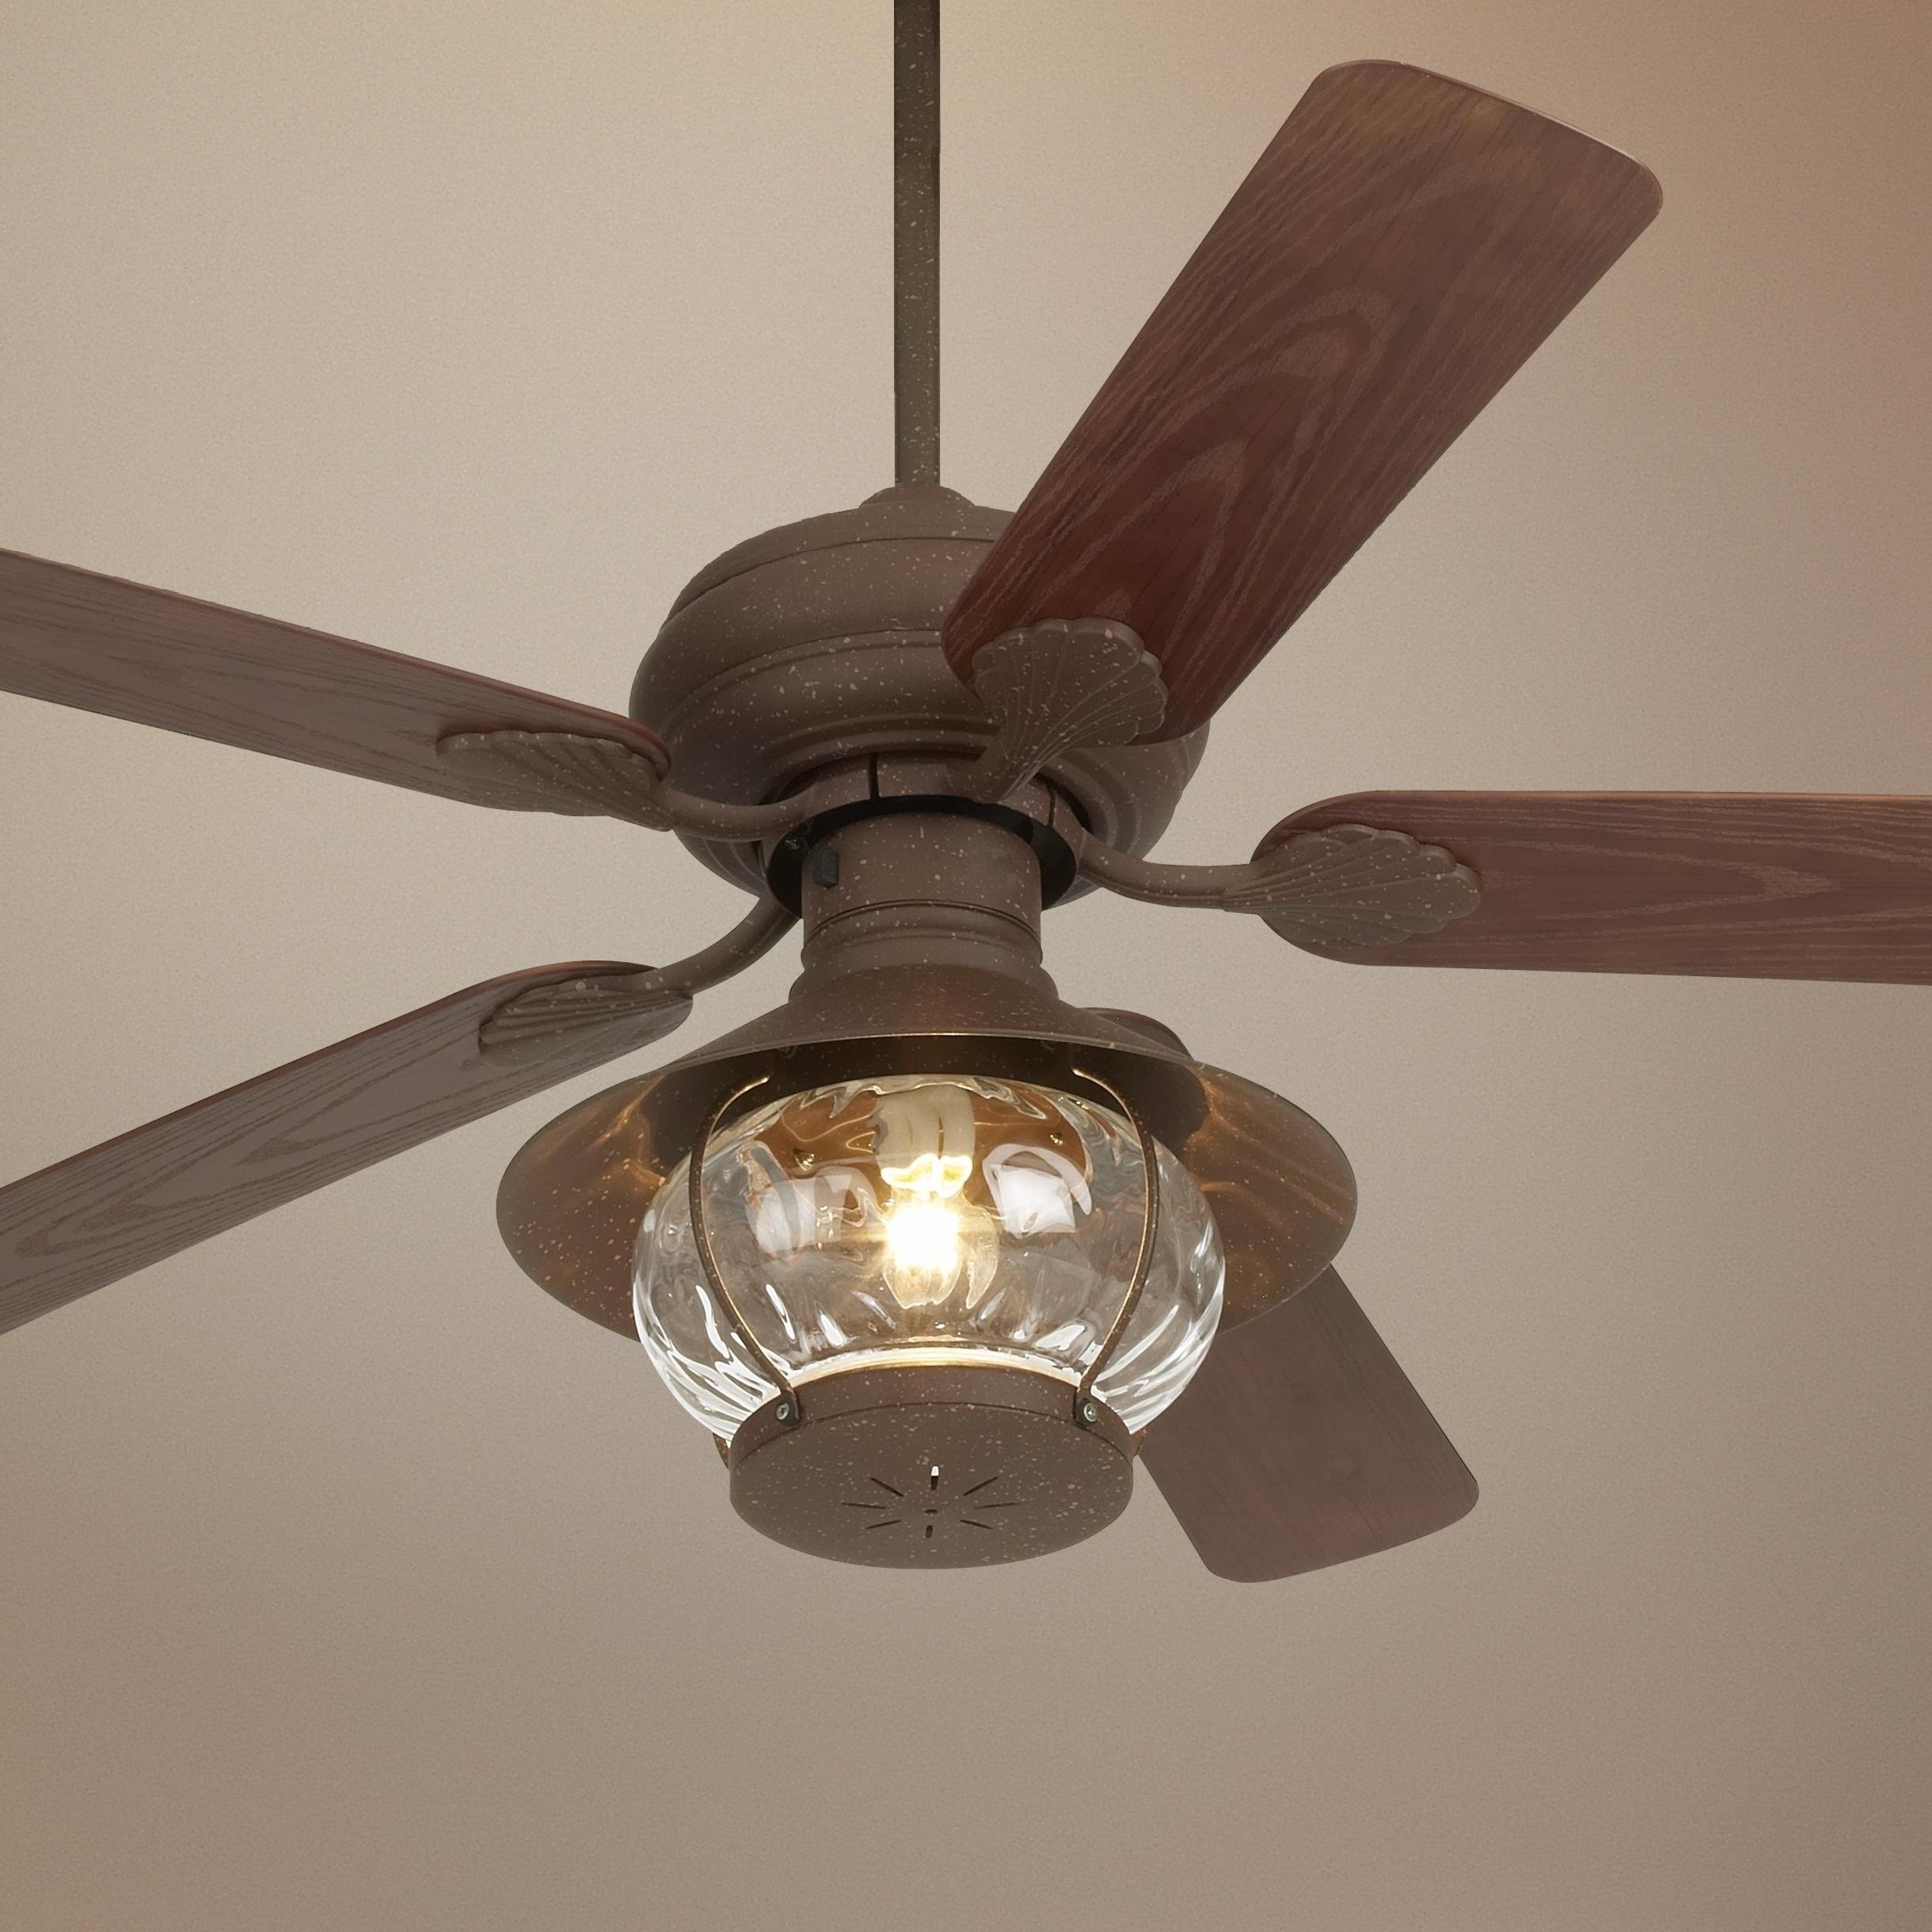 Favorite Rustic Outdoor Ceiling Fans With Lights Inside Radiant Ceiling Rustic Outdoor Ceiling Fans Western Light Pertaining (View 8 of 20)